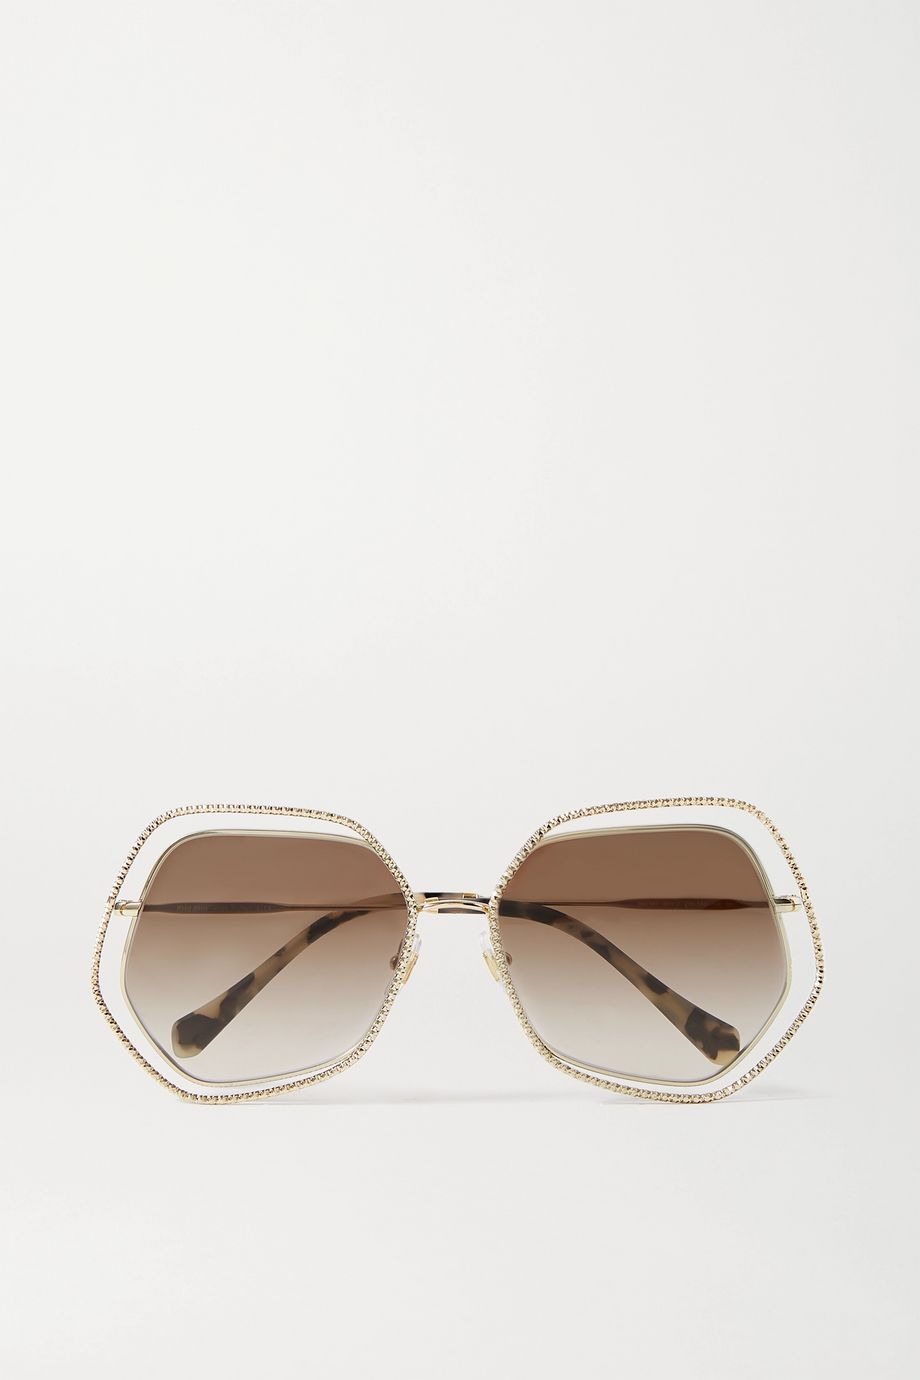 Miu Miu Eyewear Oversized hexagon-frame gold-tone sunglasses